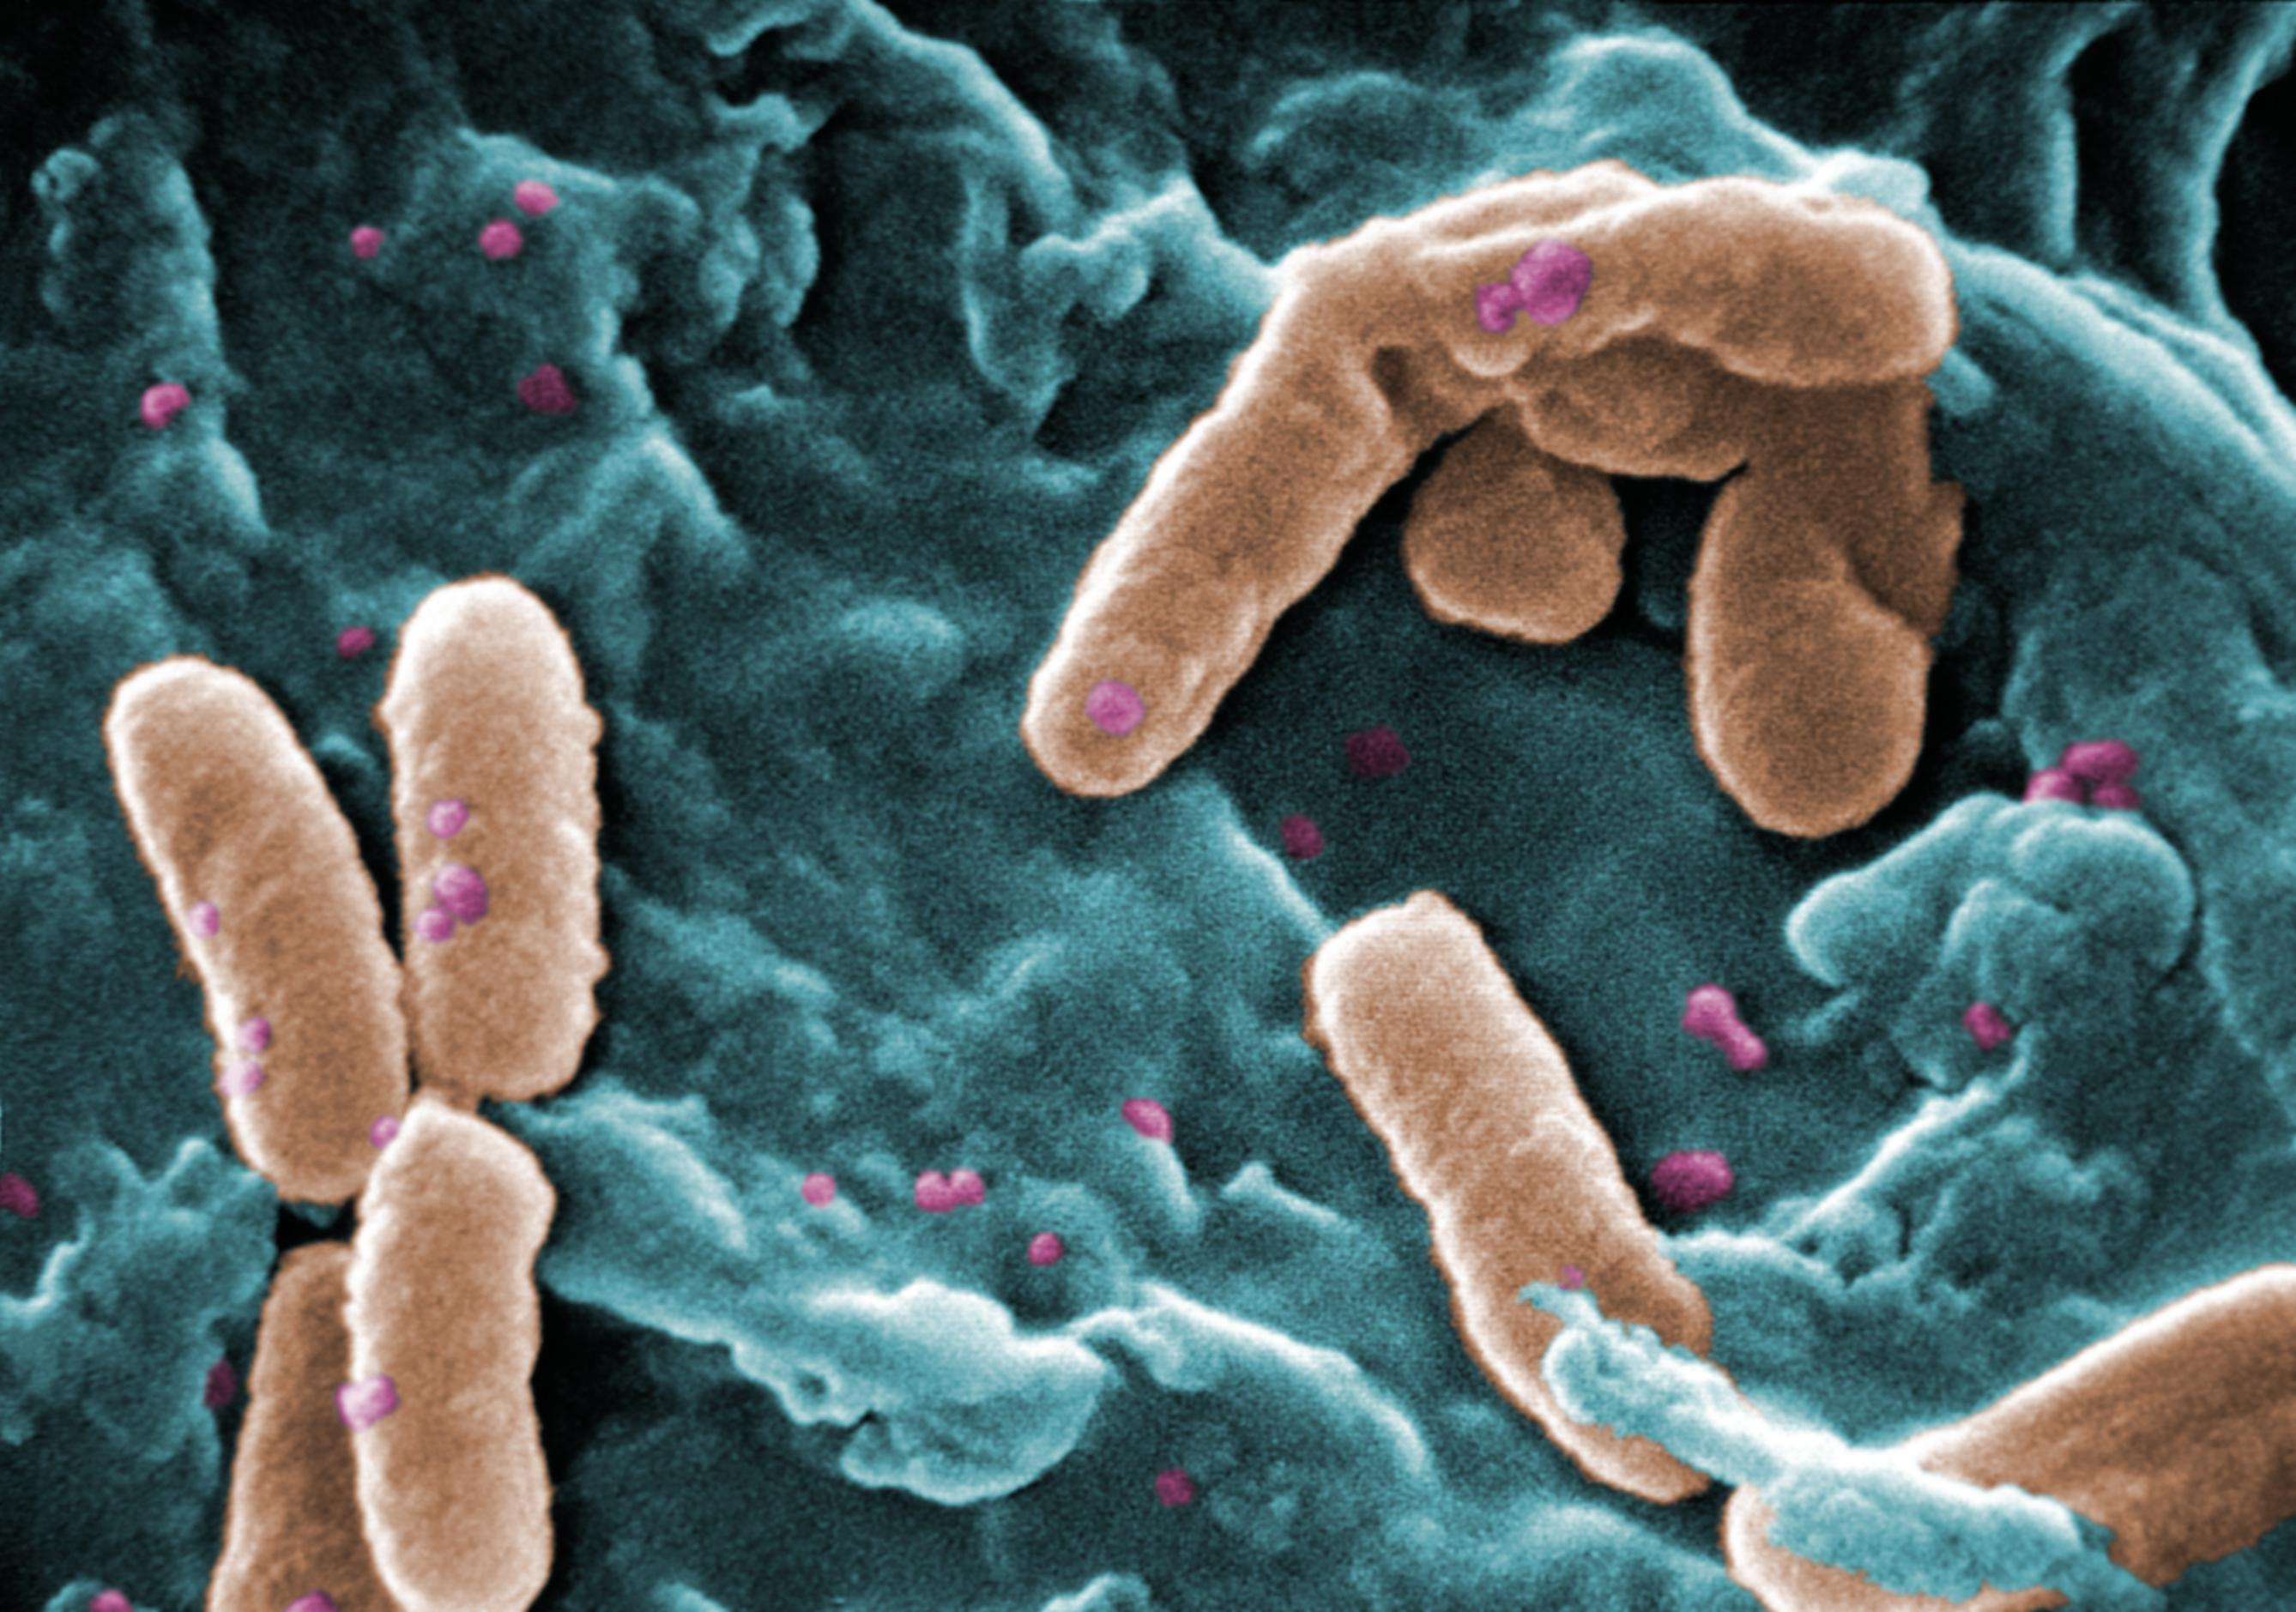 Pseudomonas aeruginosa, a bacteria species that exhibits biofilm formation